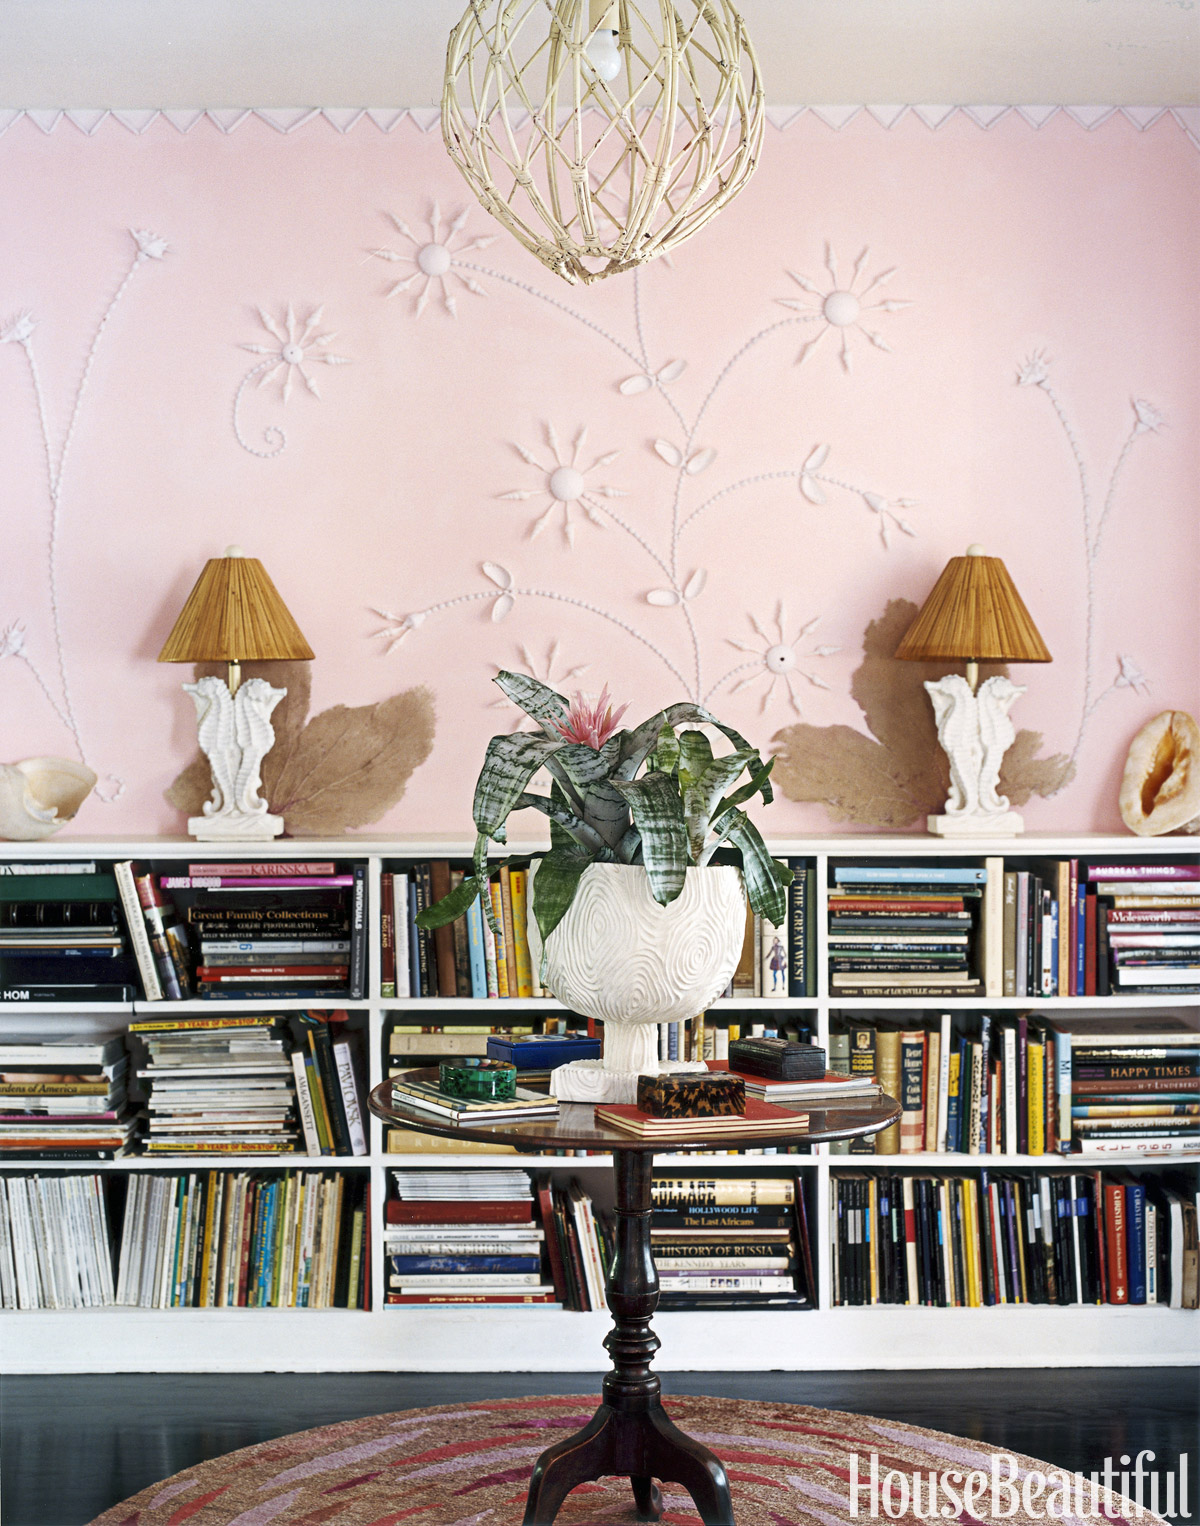 Designed by Gene Meyer and Frank de Biasi, this library features seahorses throughout the room, including the vintage plaster lamps with rattan shades. The pink on the walls, decorated with seashells, is a custom mix that is fitting for this Miami home.